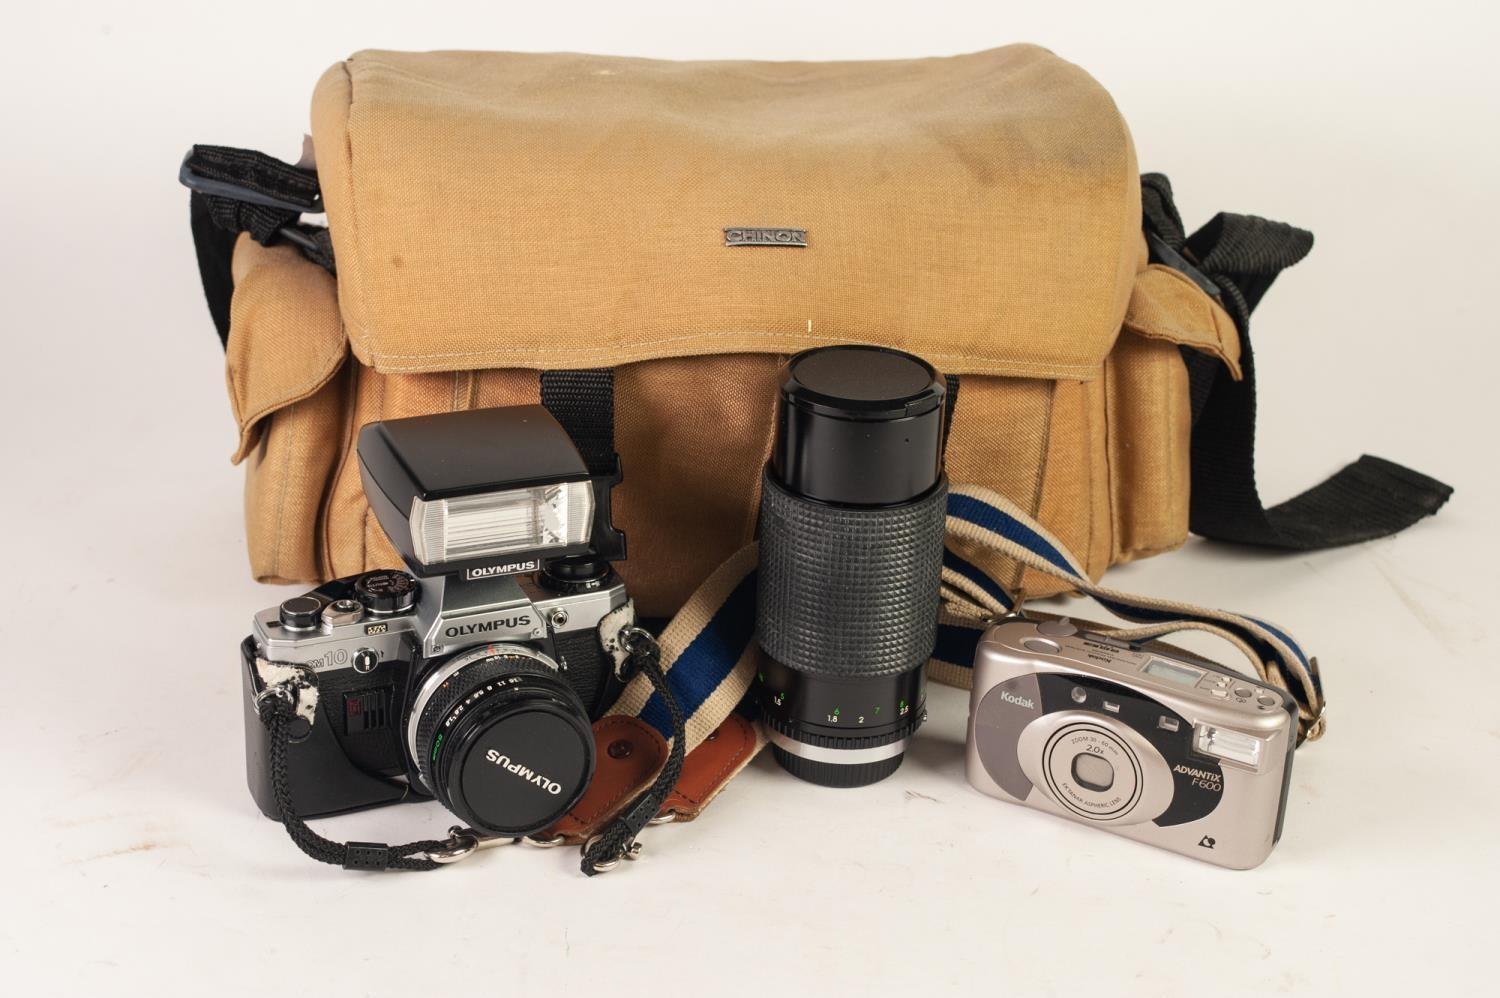 Lot 215 - OLYMPUS OM10 SINGLE LENS REFLEX CAMERA, with Zuiko Auto-S 50mm 1:1.8 lens. TOGETHER WITH AN ERNO